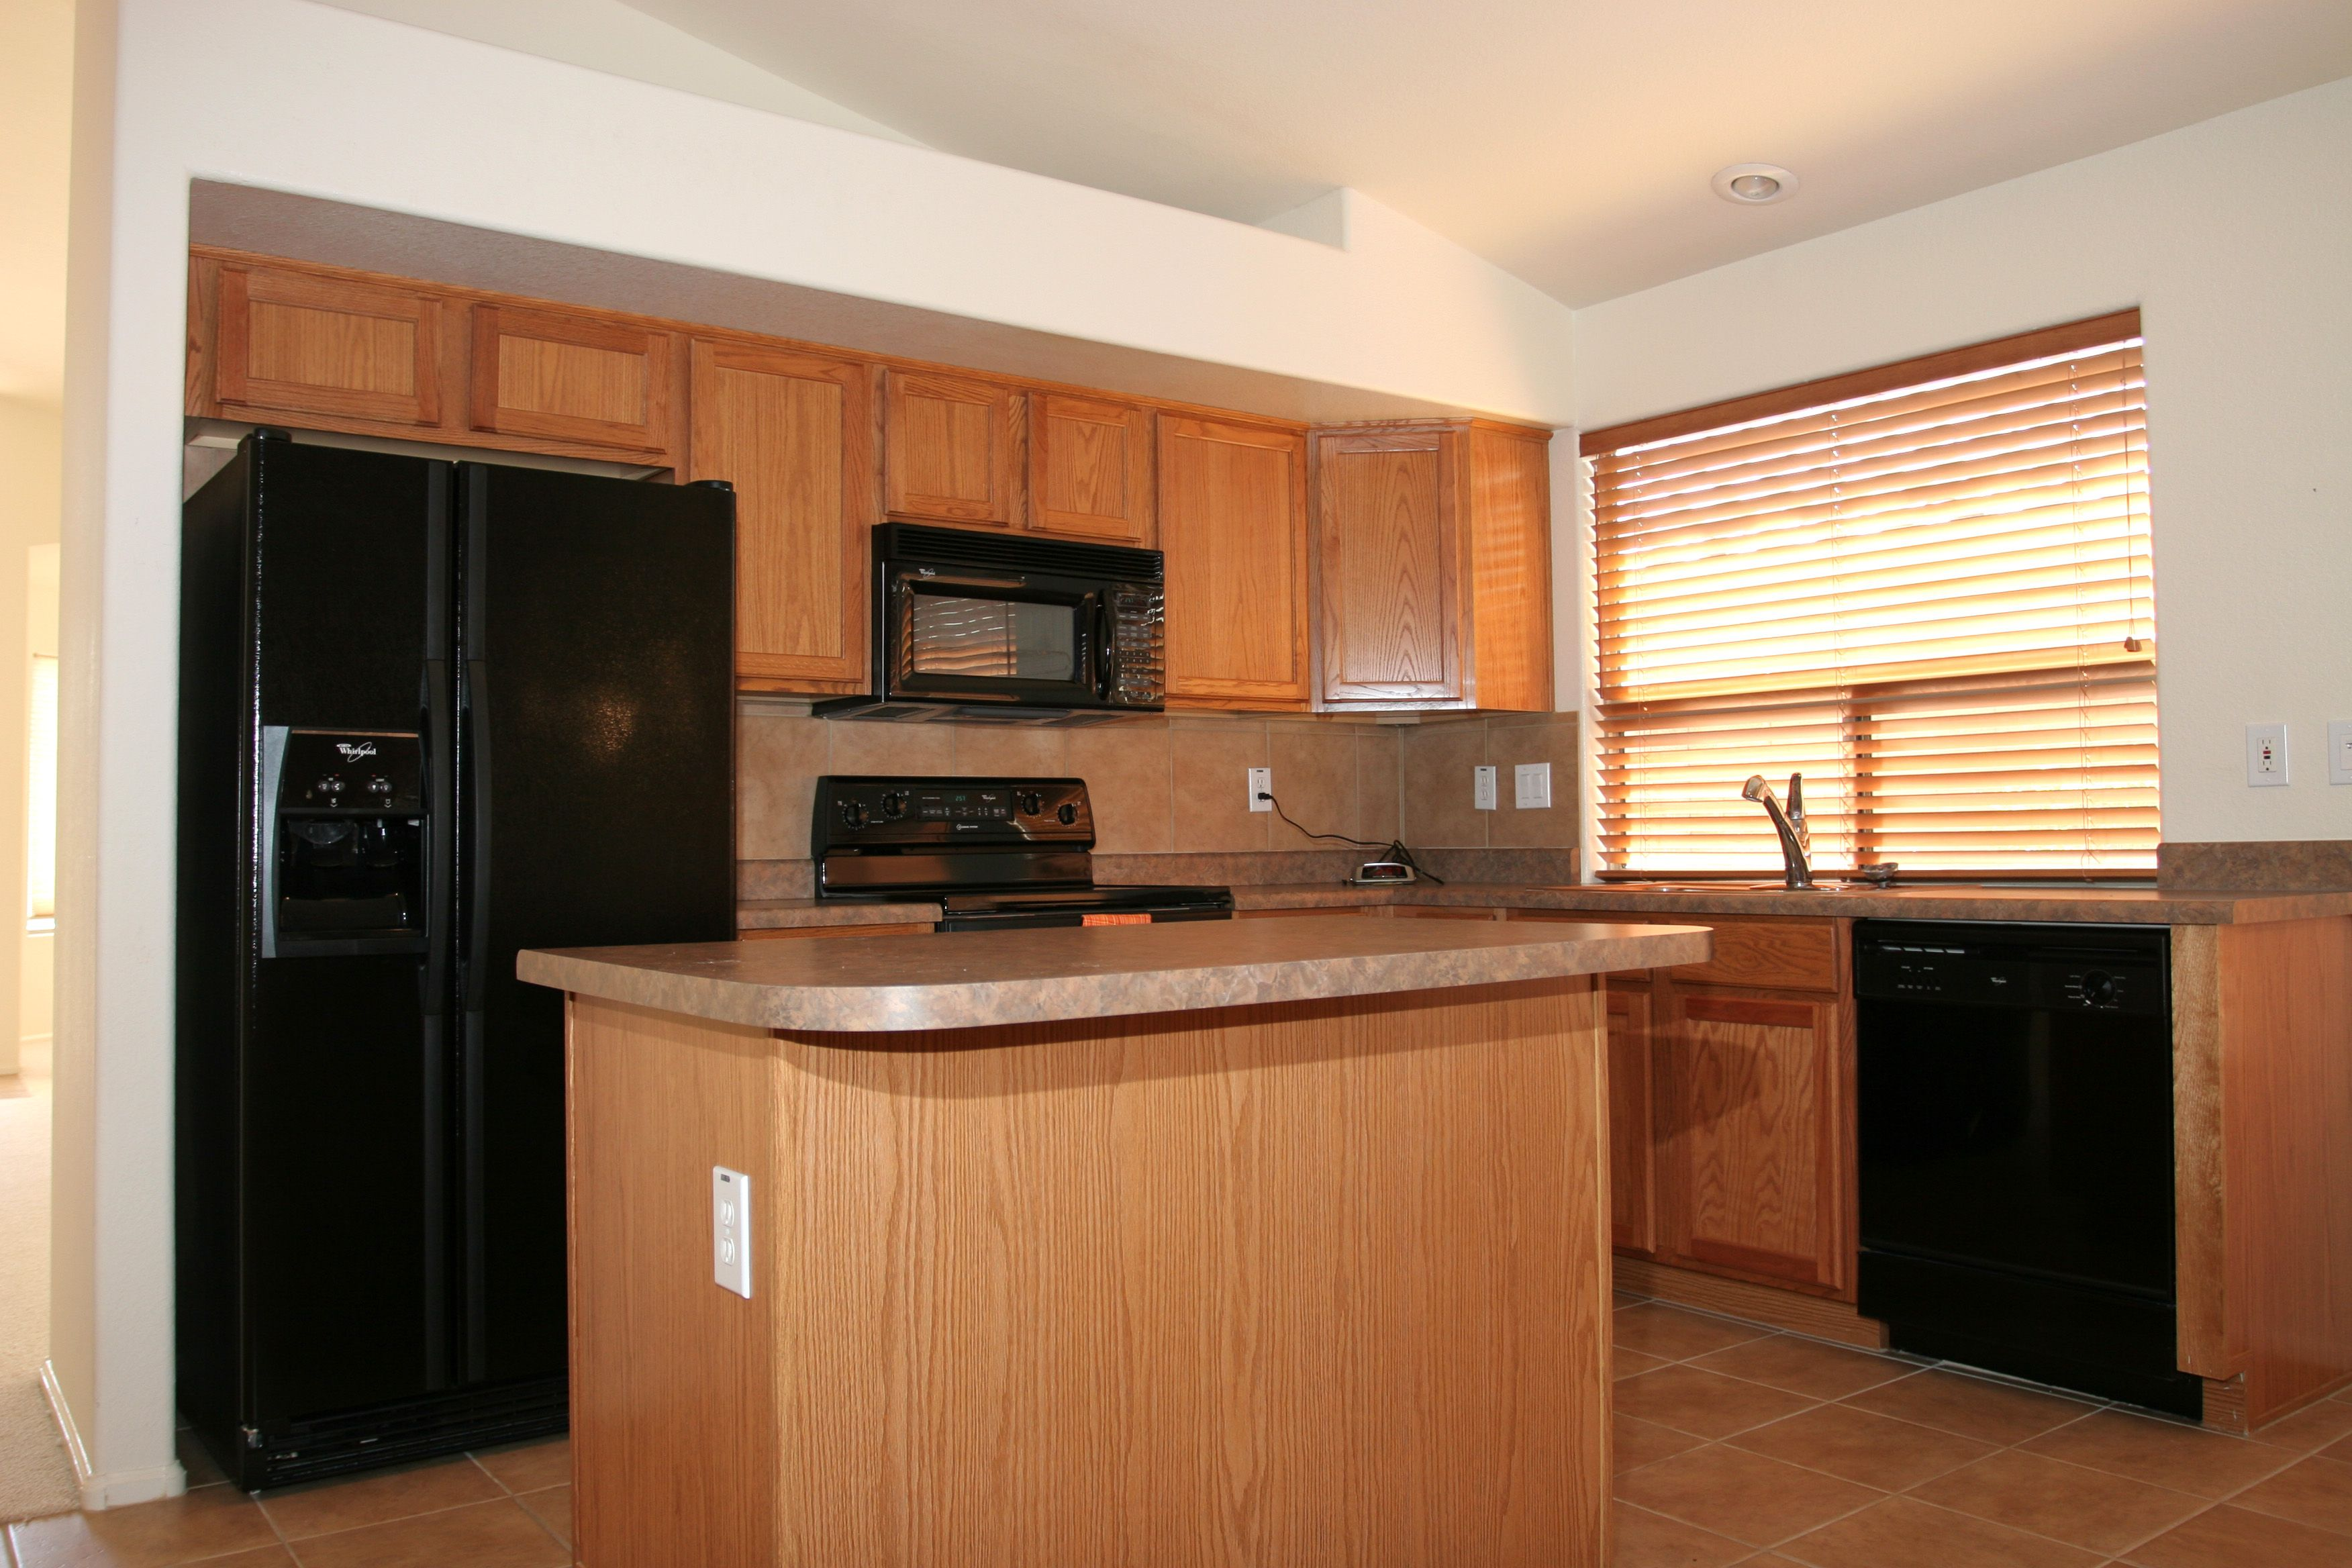 Kitchen Designs With Oak Cabinets And White Appliances Kitchen Black Appliances Photo Gallery Homes Of The